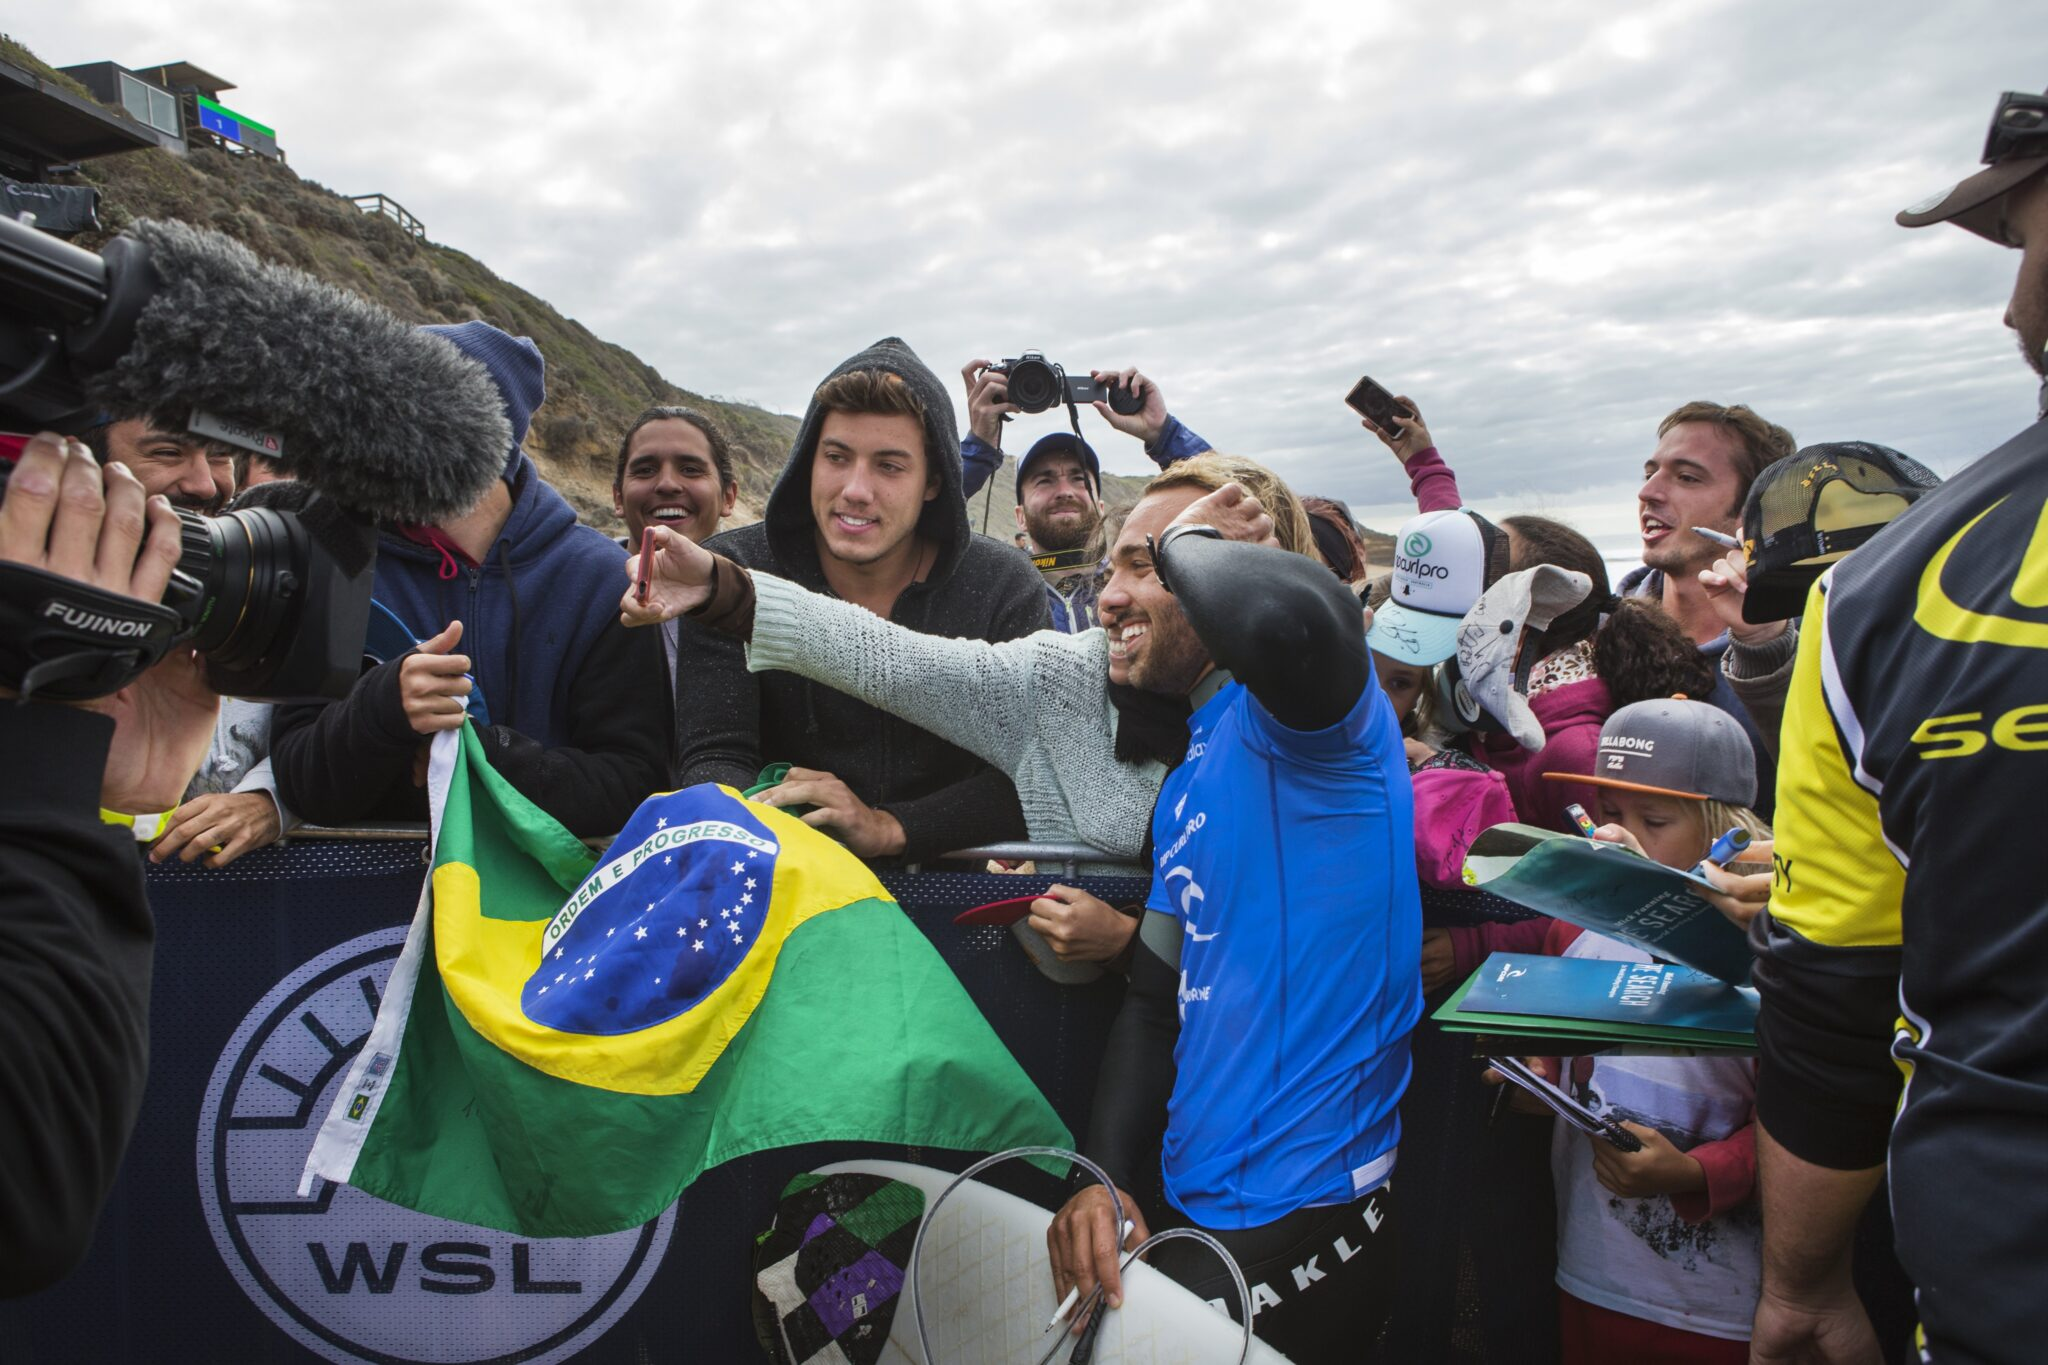 Caio Ibelli celebrating his win over John John Florence with his fans.